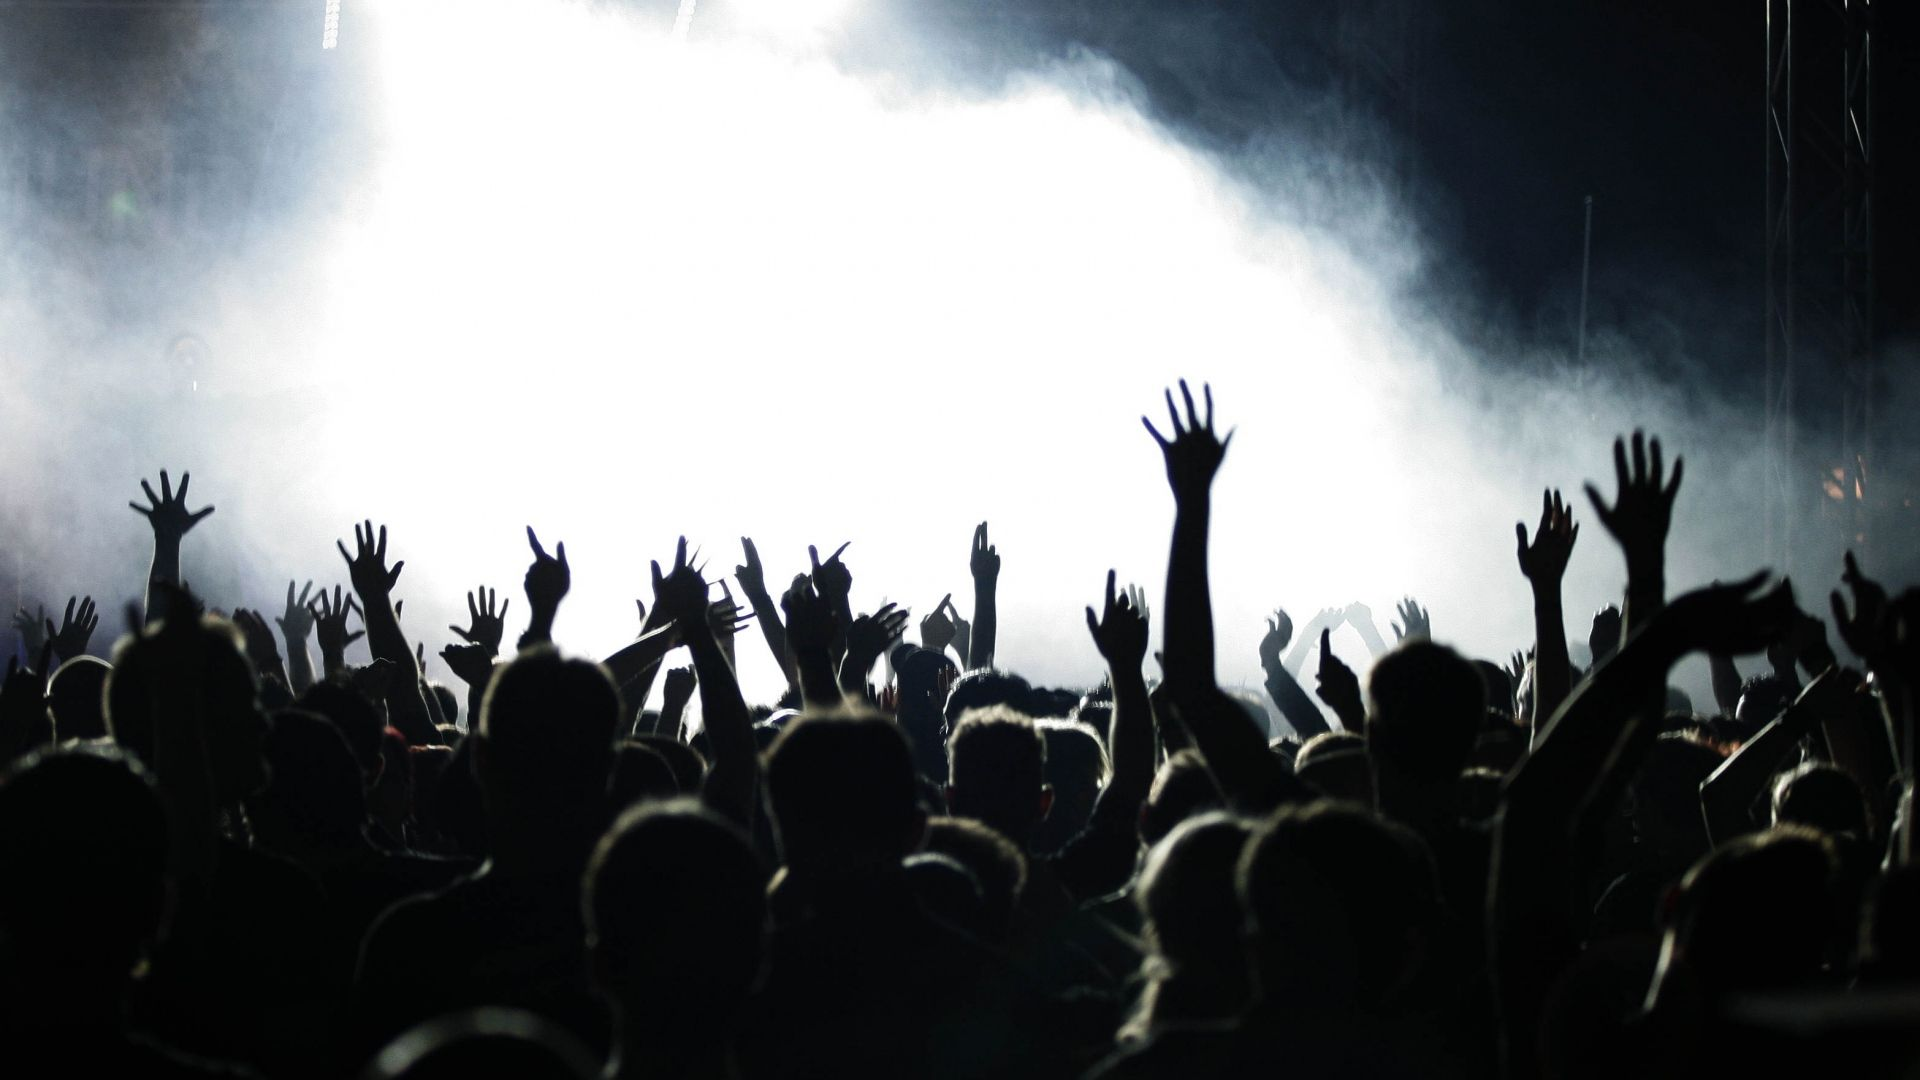 1920x1080 Wallpaper People Hands Concert Music Crowd En